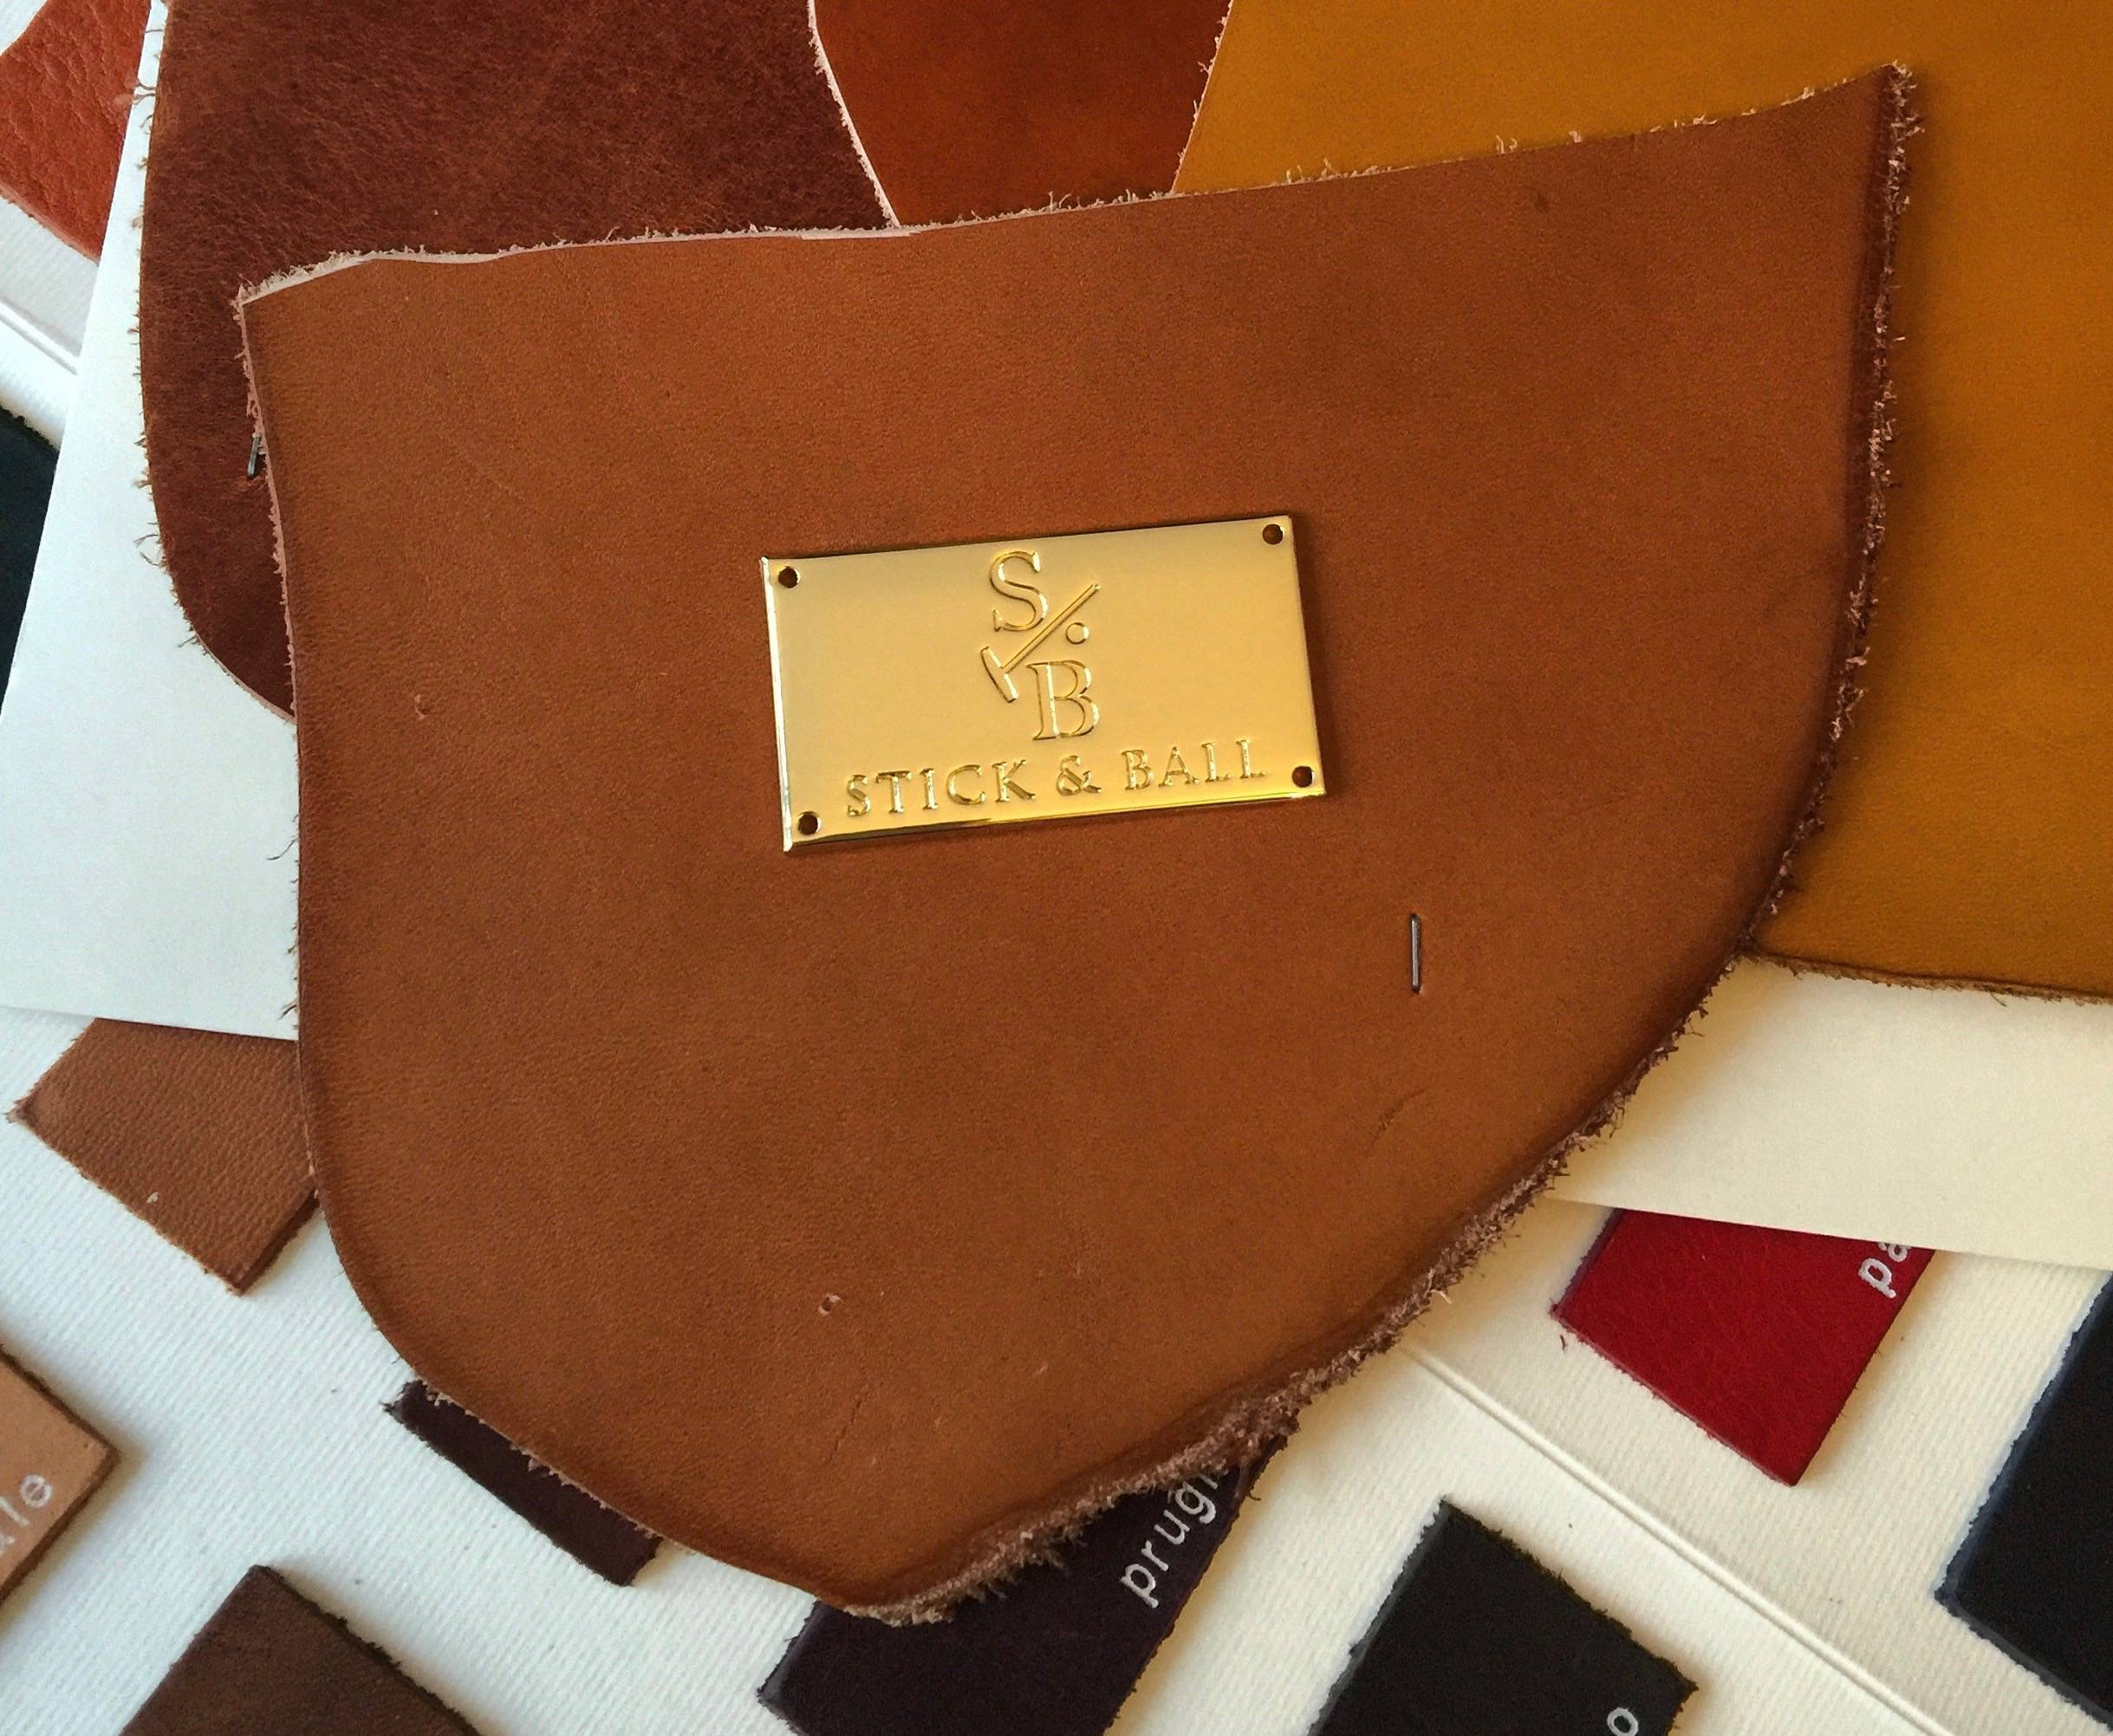 Design sample of the Stick & Ball logo gold plate on vegetable-tanned leather